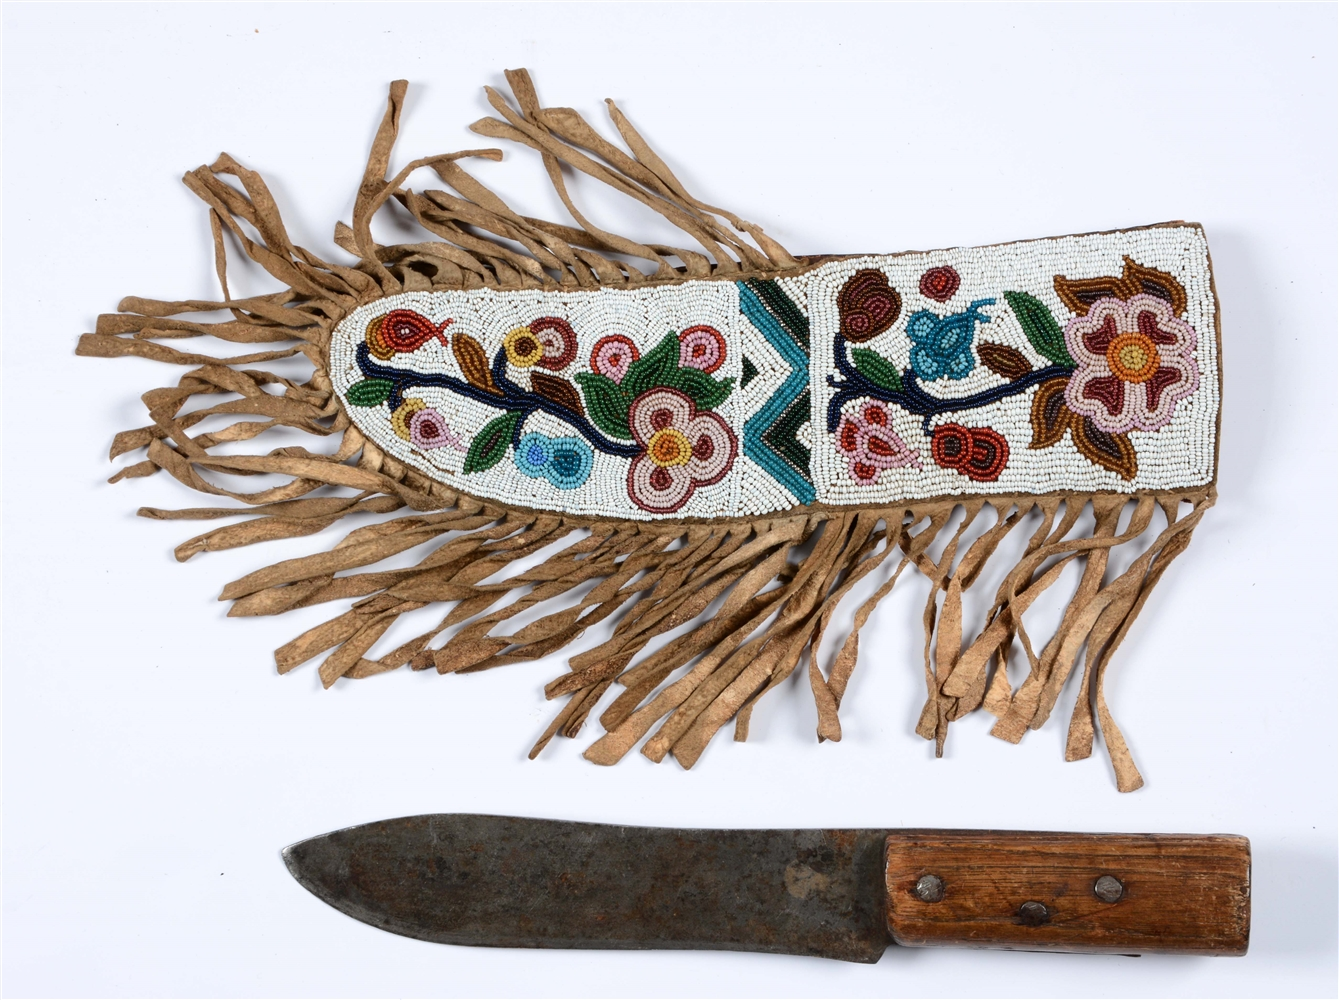 Plains Cree Knife Sheath And Knife.